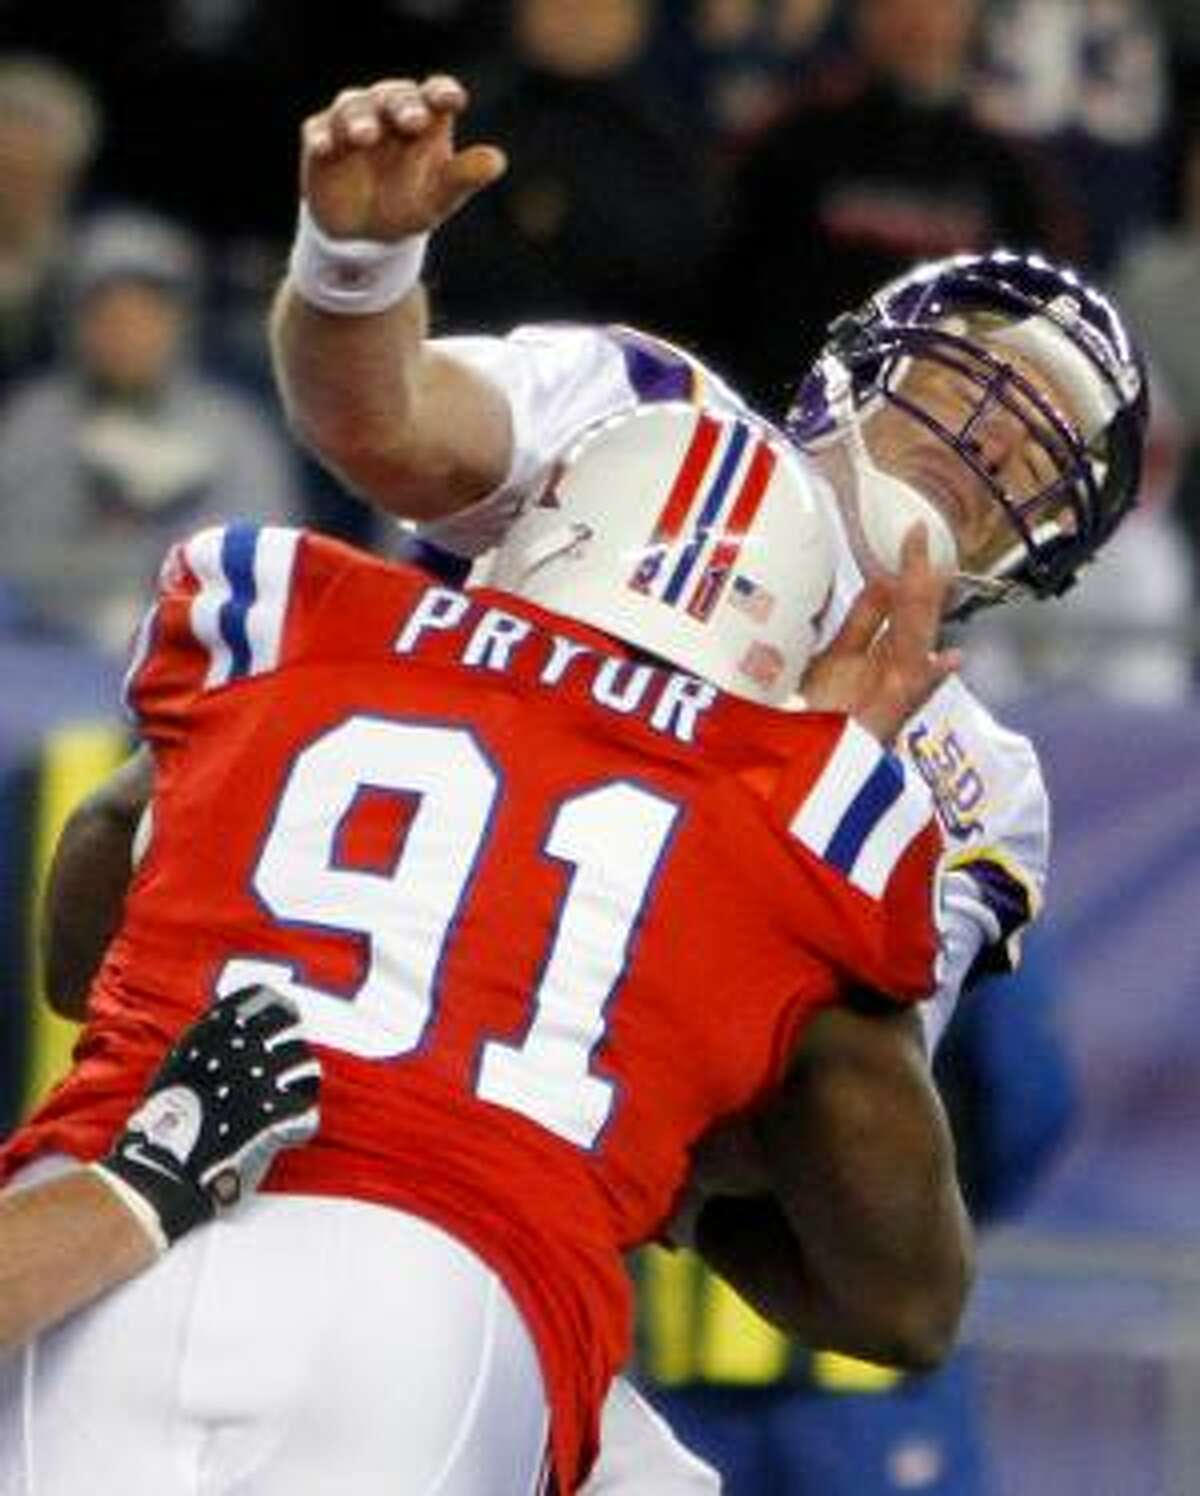 AP New England Patriots defensive tackle Myron Pryor (91) hits Minnesota Vikings quarterback Brett Favre in the fourth quarter of Sunday's game in Foxboro, Mass. Favre was knocked out of the game after sustaining an injury to his chin. He did not return to the game and needed stitches.